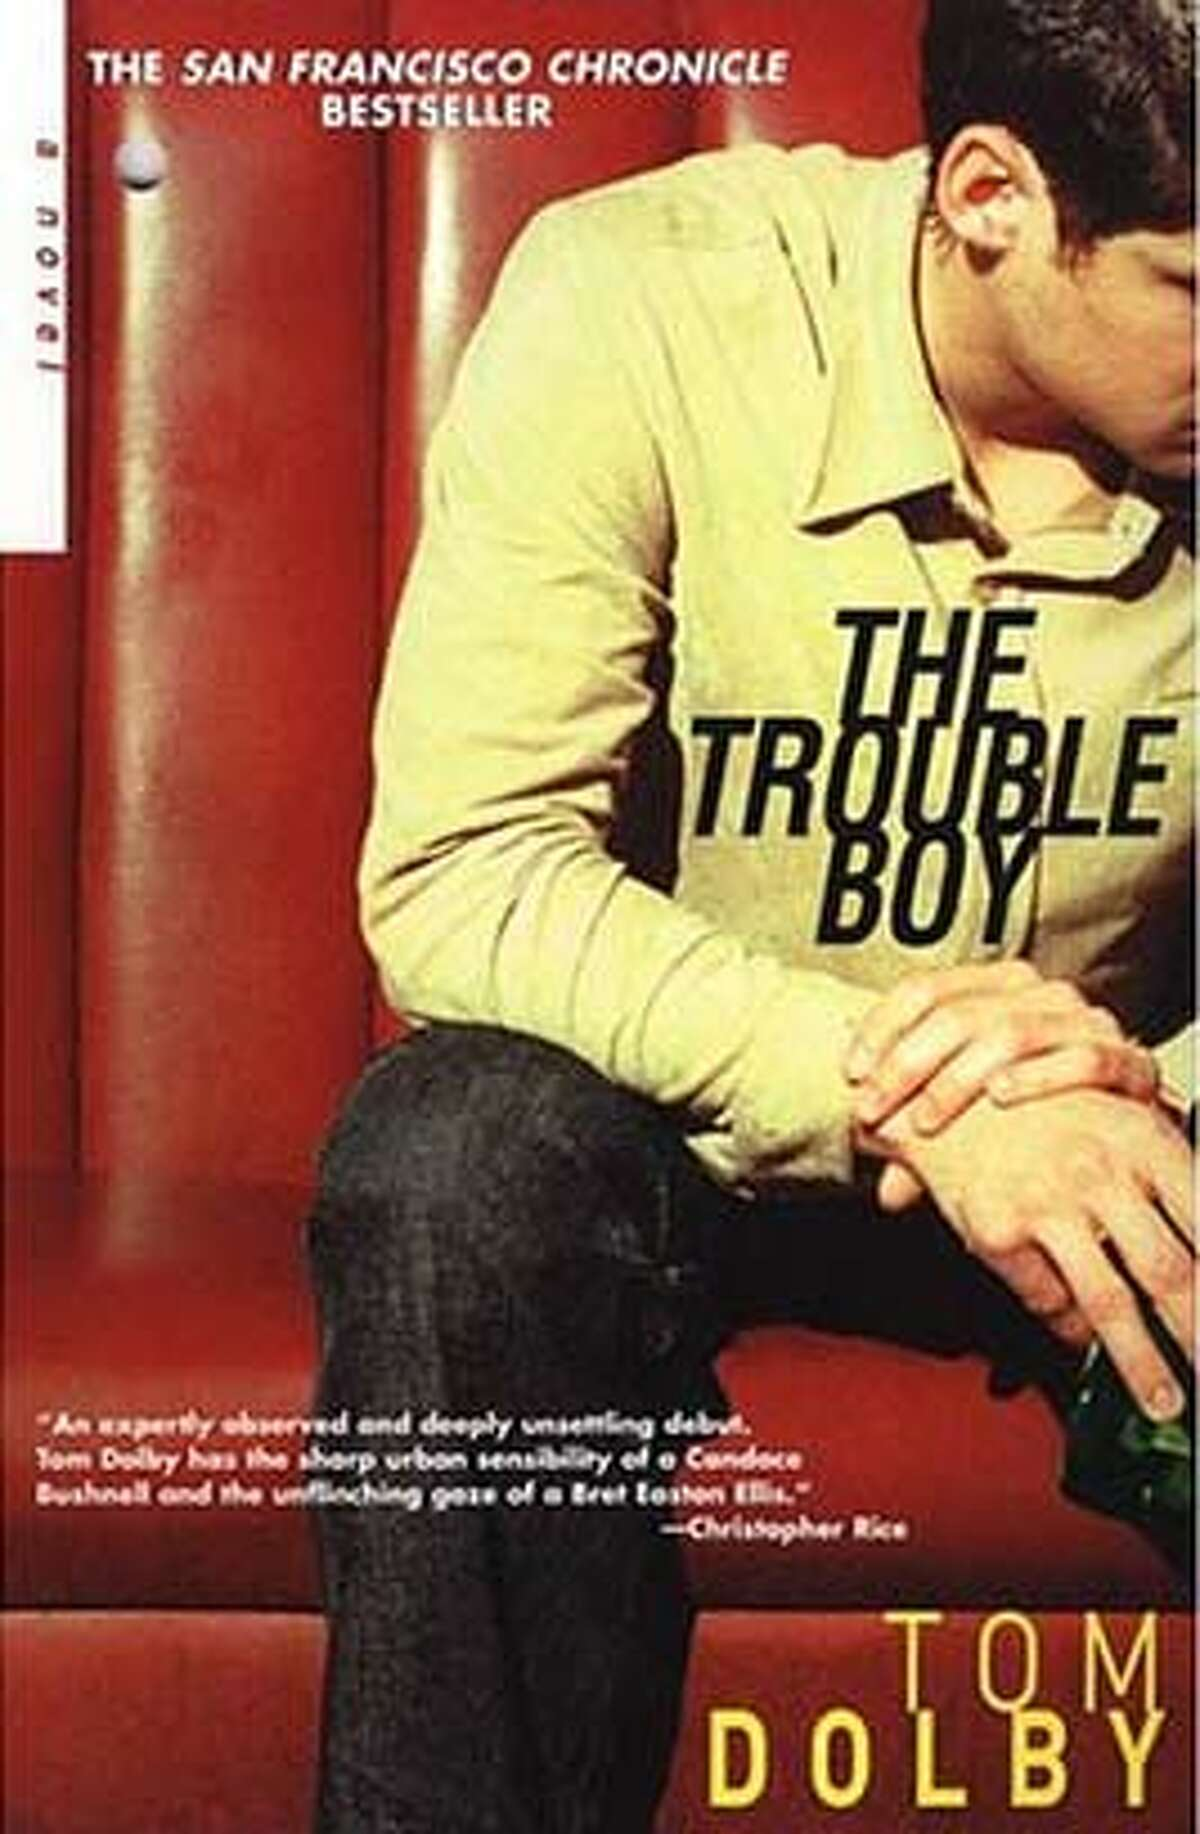 The Trouble Boy (Paperback) by Tom Dolby (Author)